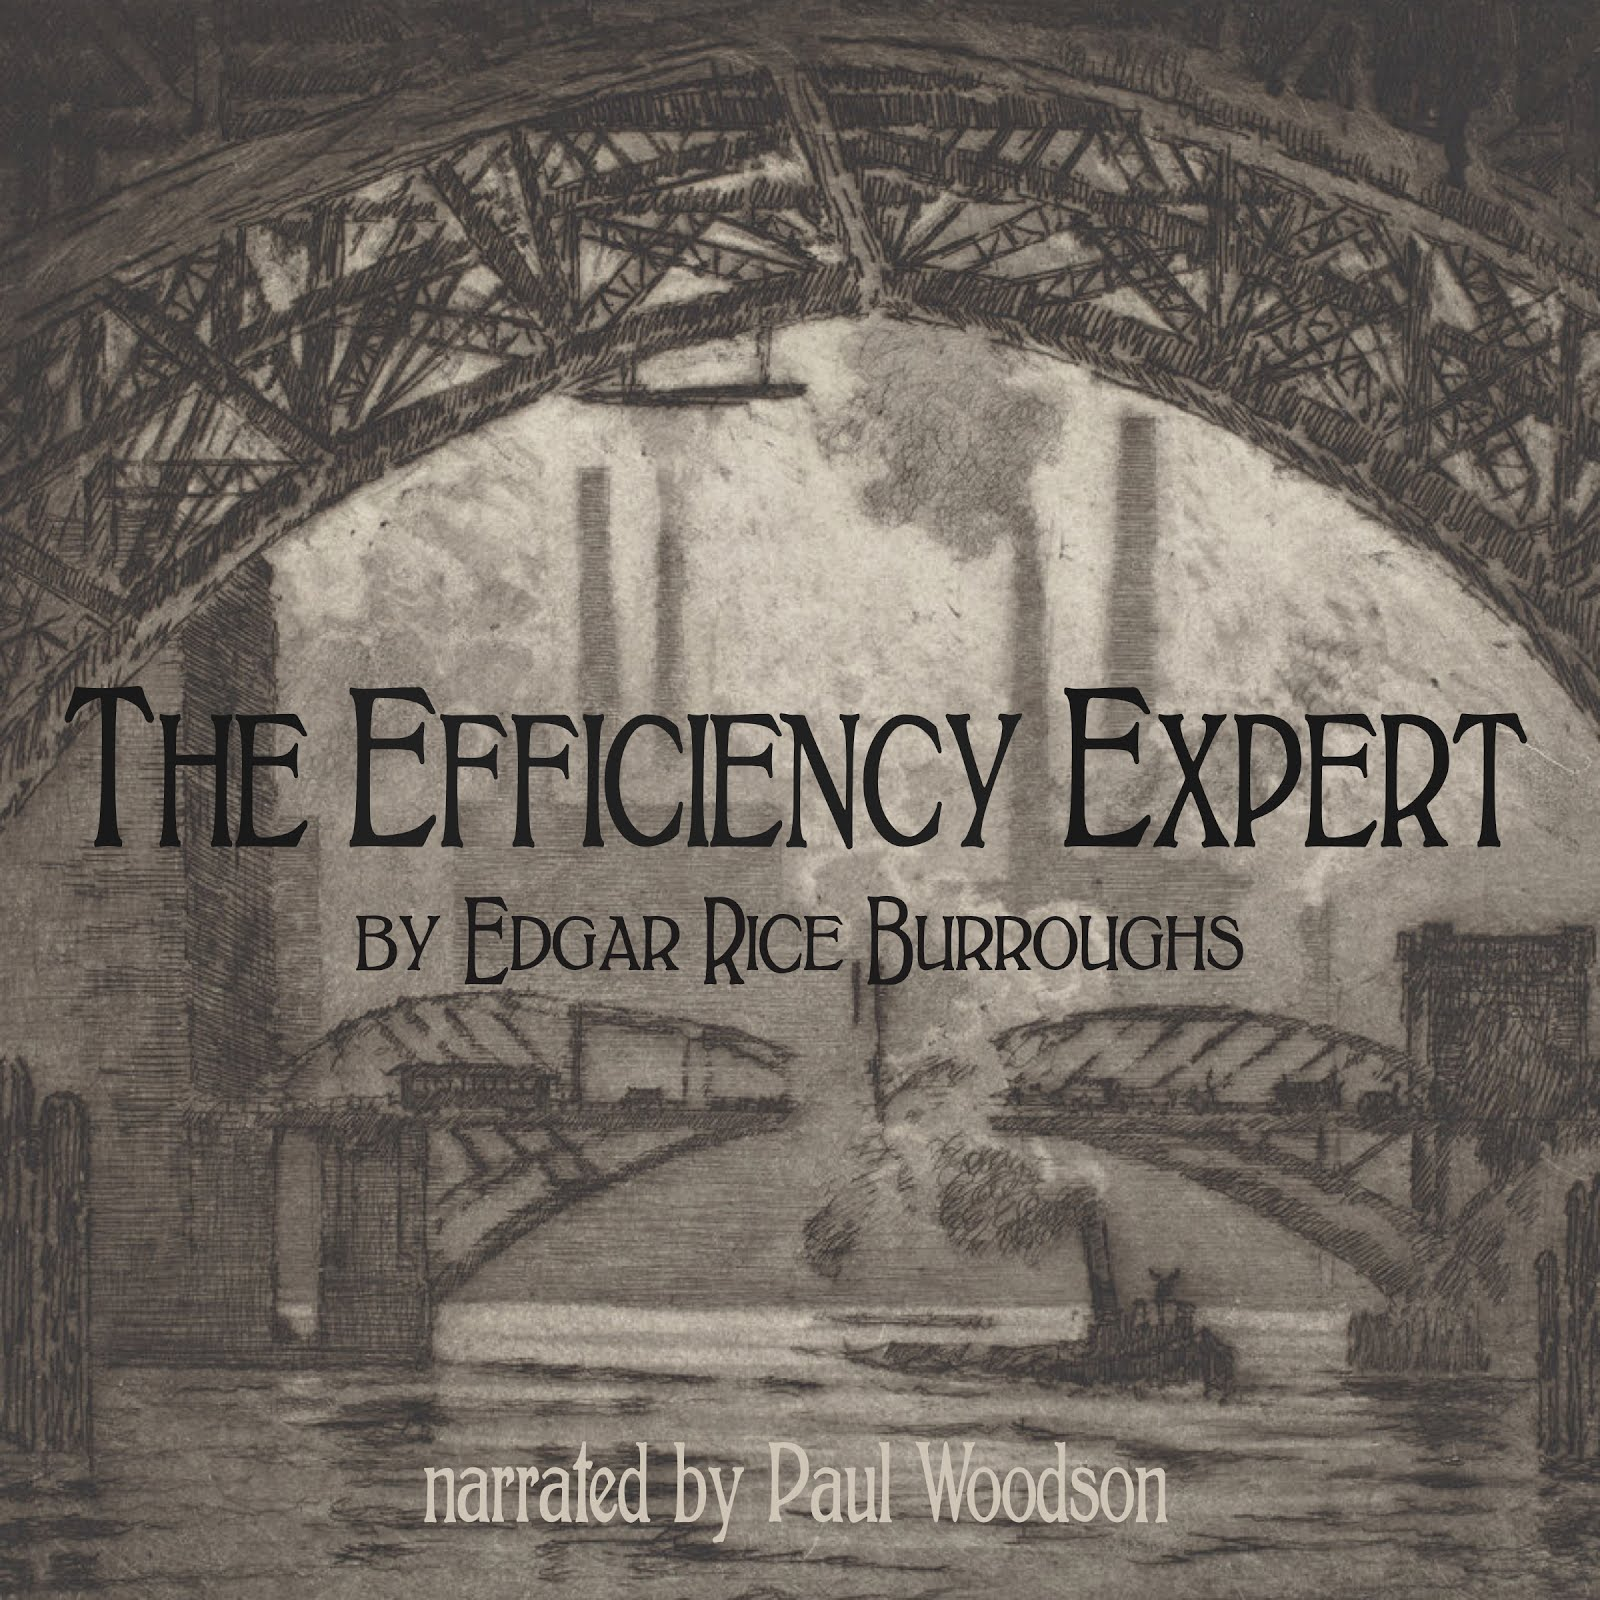 Classics Corner: The Efficiency Expert